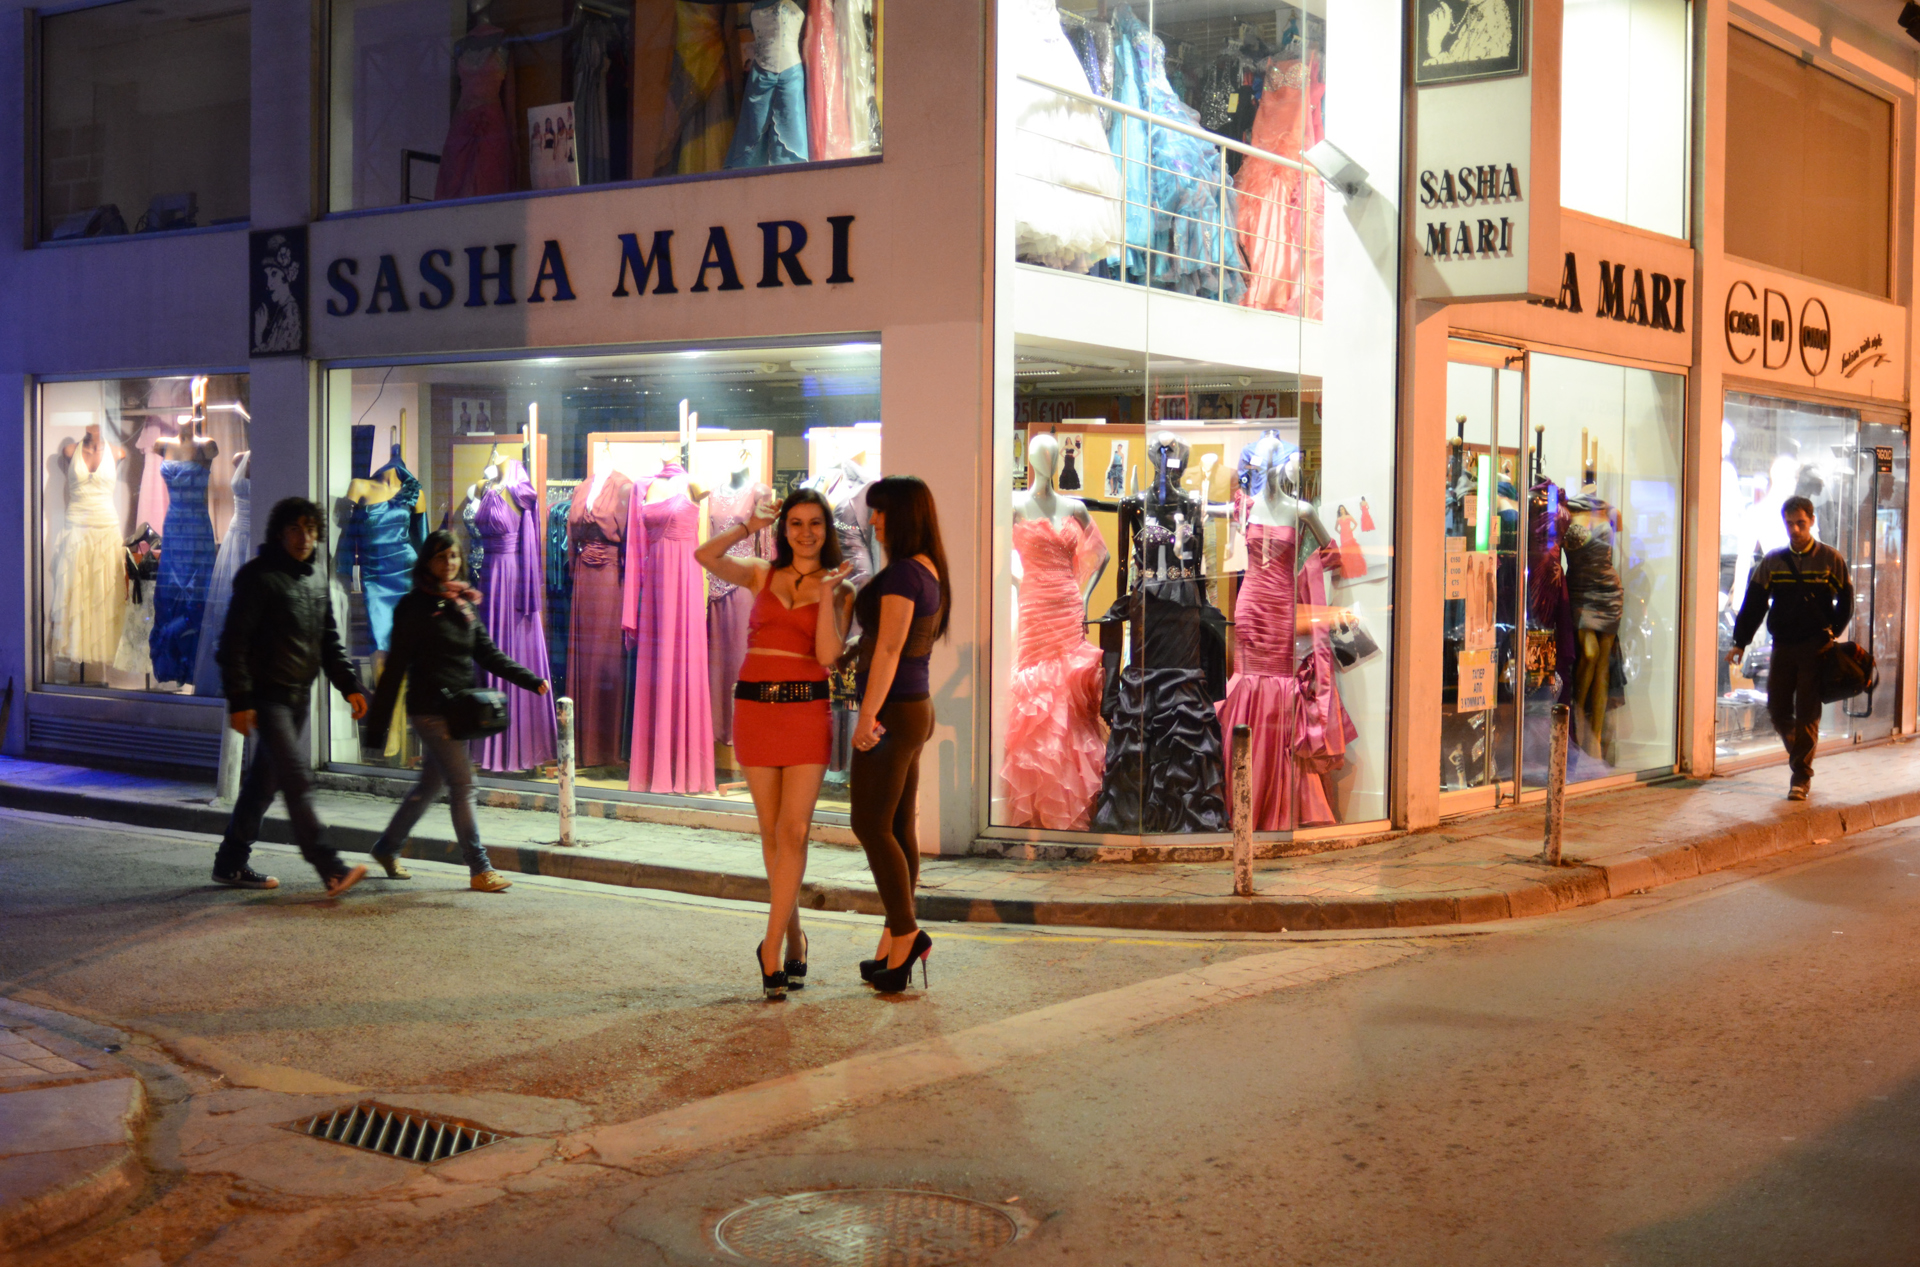 NICOSIA, CYPRUS.  Girls are seen walking the streets outside a cabaret on March 26, 2013. As the Cypriot banking sector collapses, the country's economy has been labeled a {quote}casino economy{quote} by unsympathetic officials in Brussels and Berlin; Nicosia's downtown has a seedy side of after-hours prostitution and cabaret.